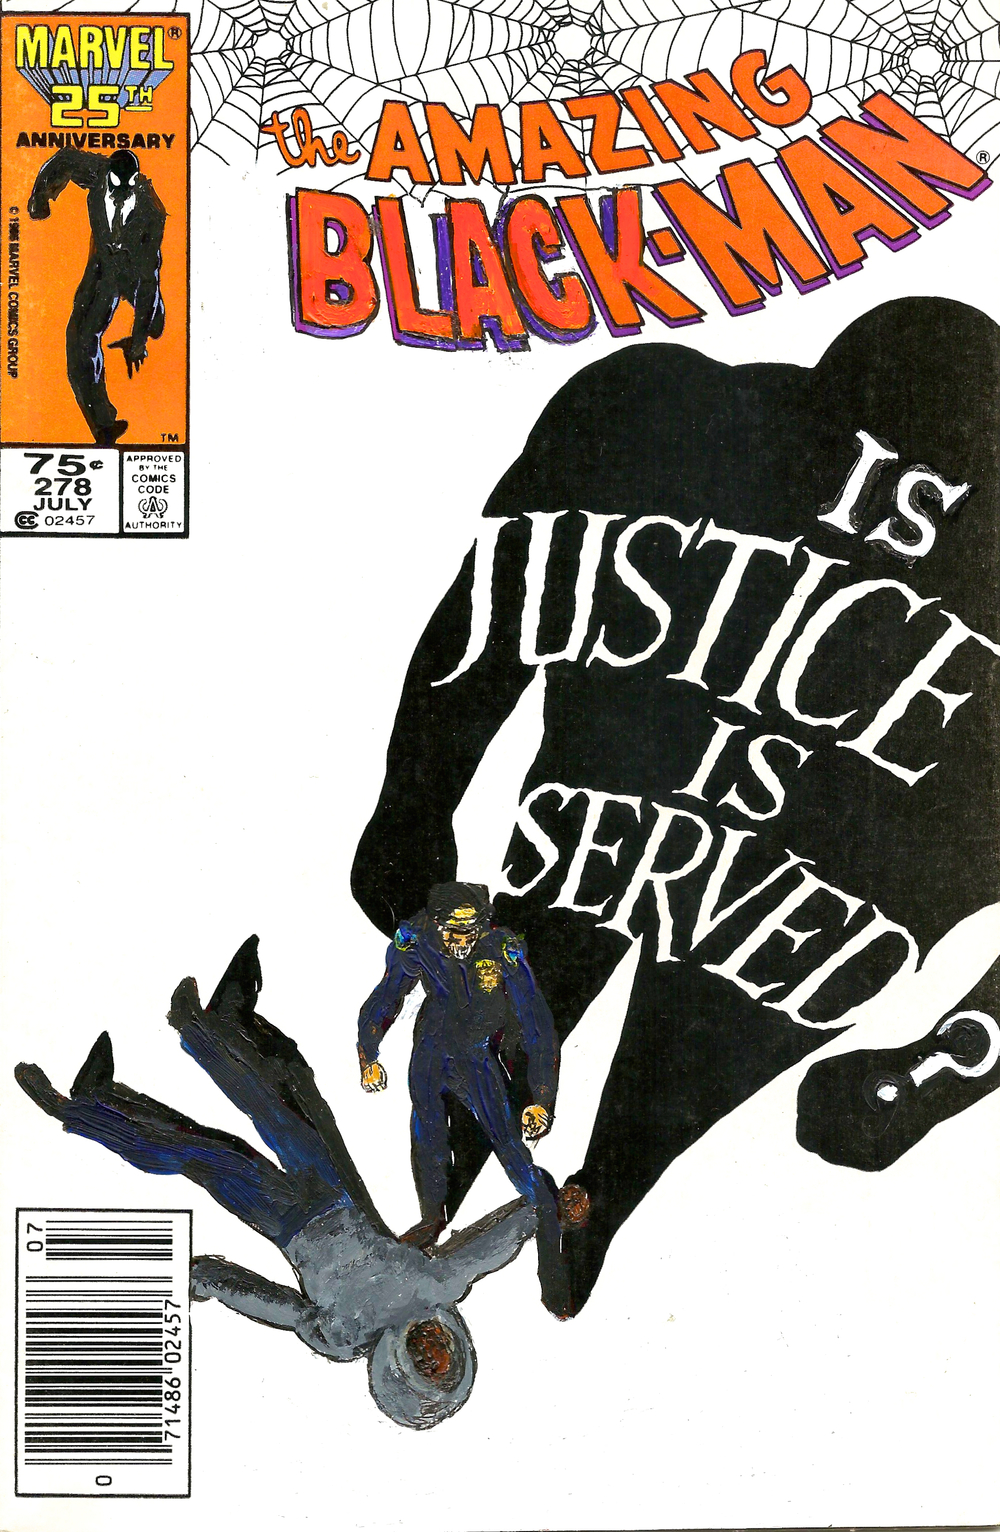 The Amazing Black-Man #278